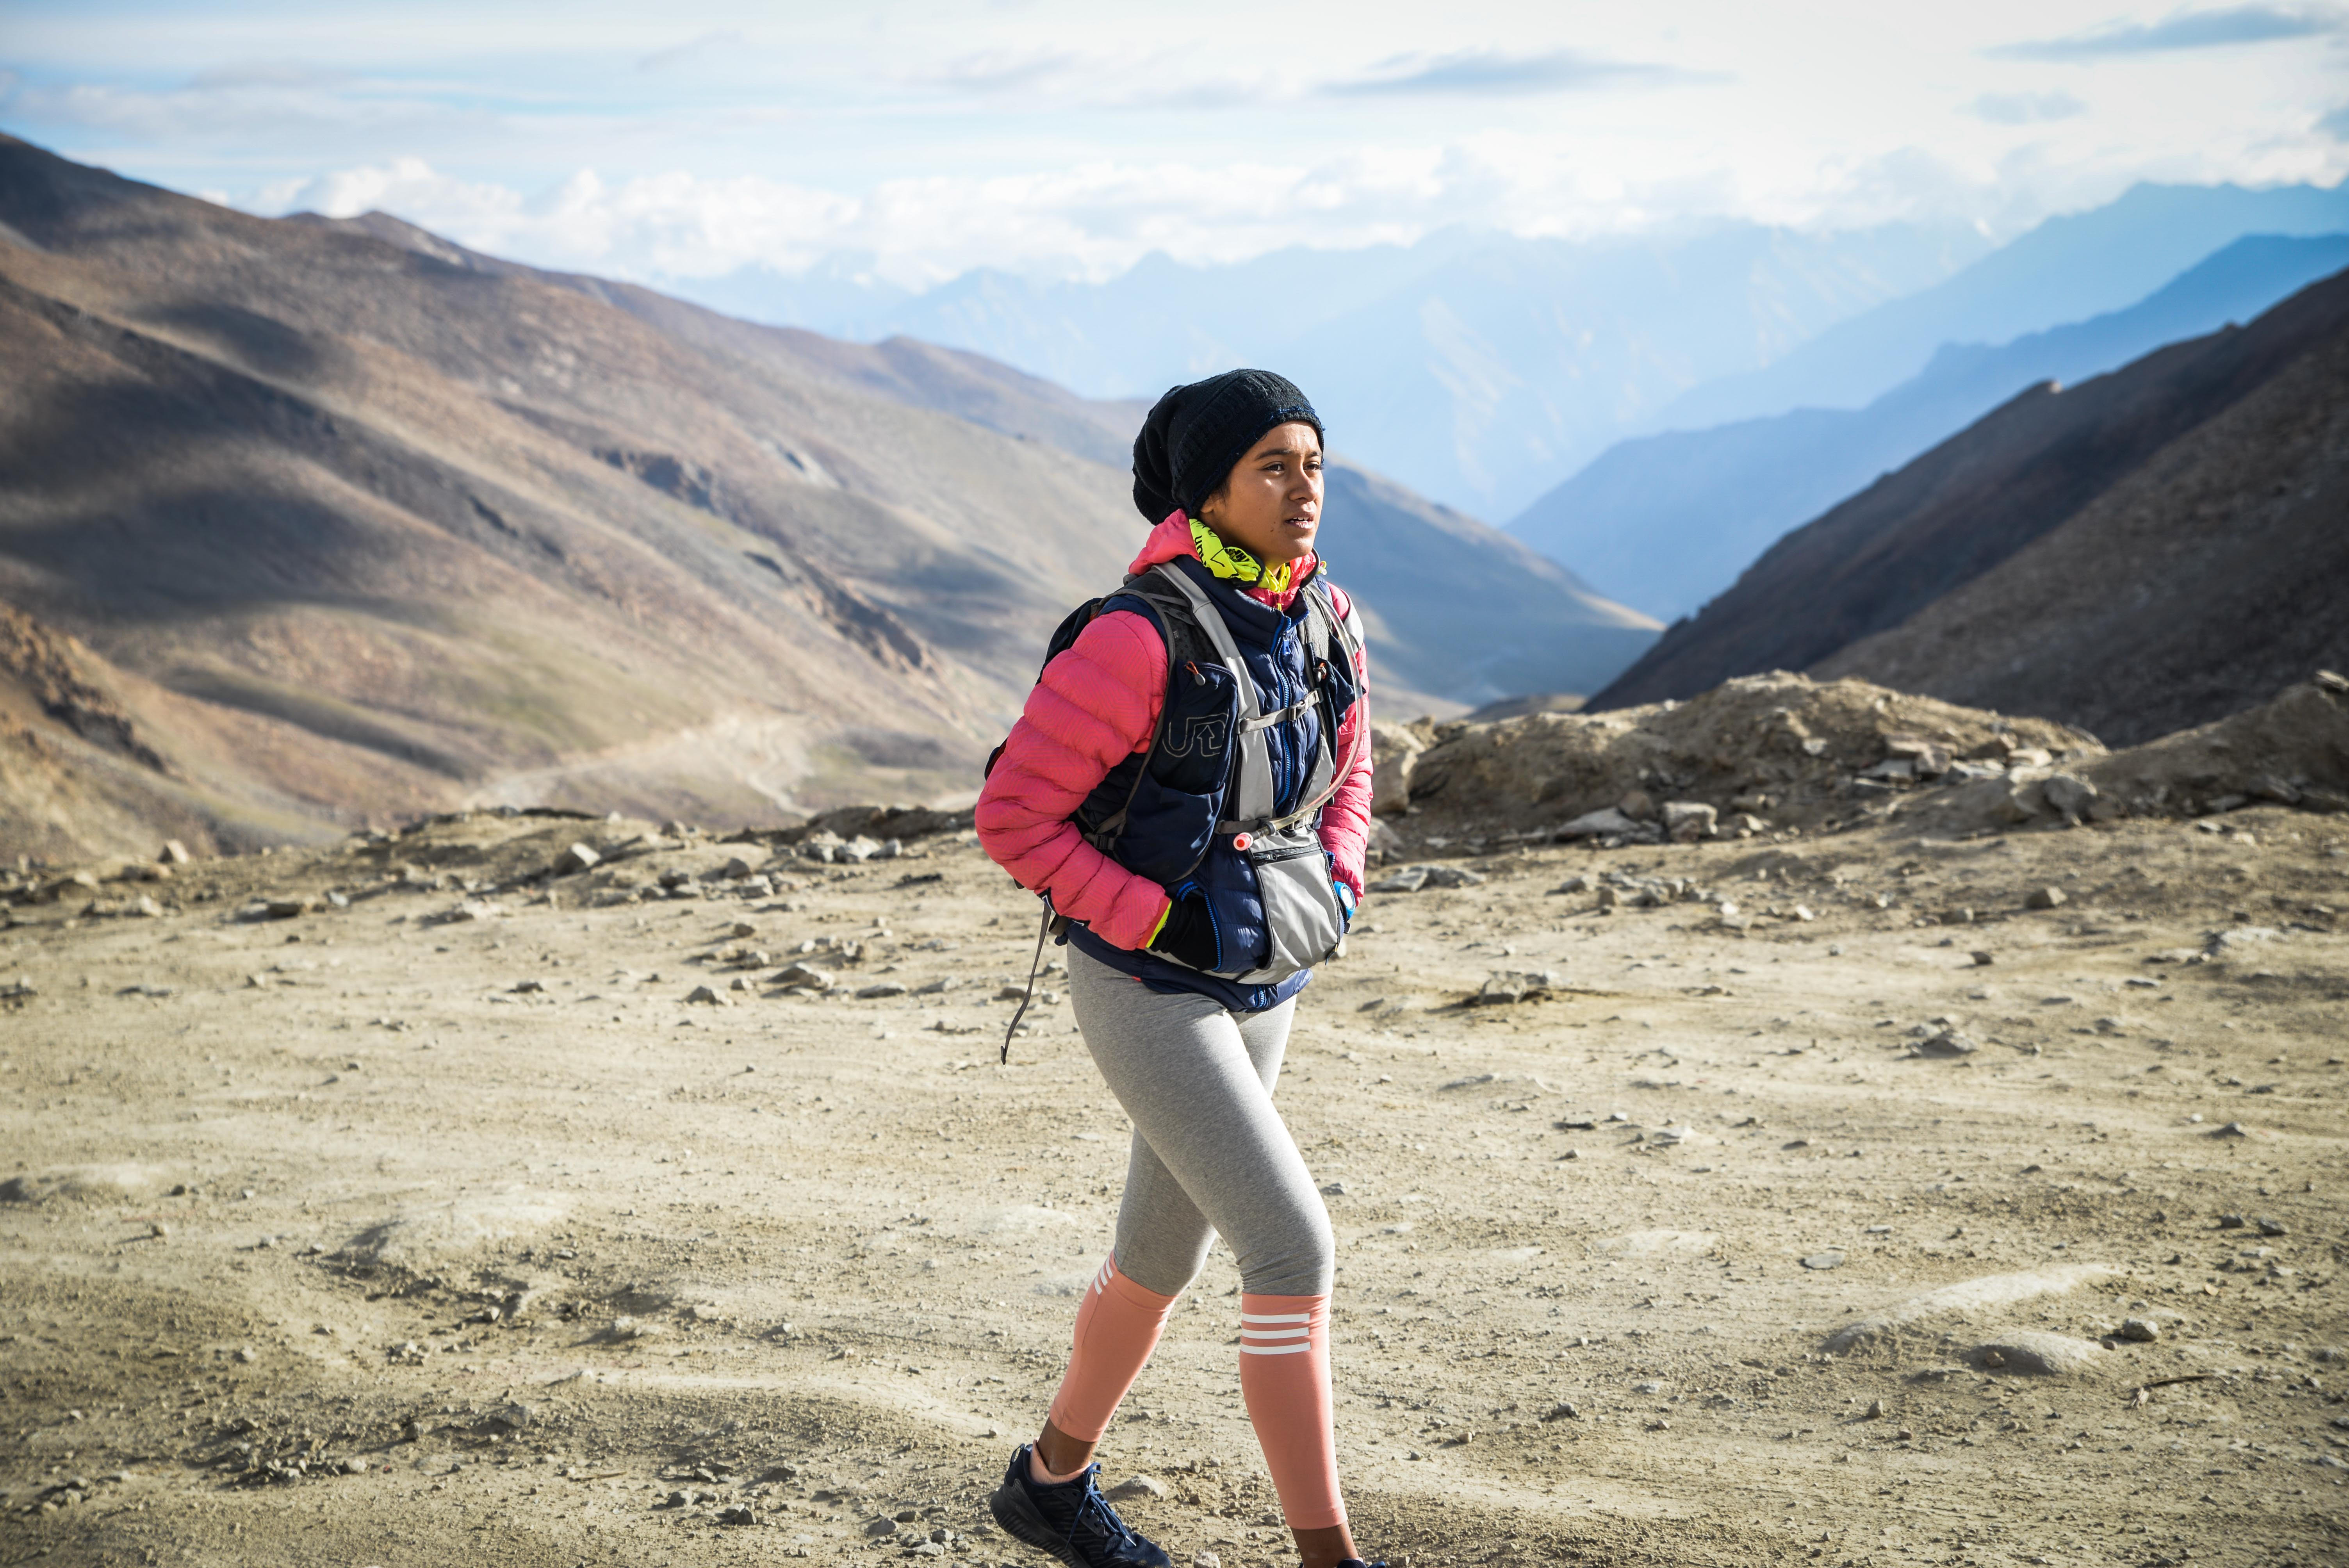 Fatigue, Hallucinations & The Risk Of Death: Here's How A 17 Year Old Became The Youngest & The Only Indian Female To Conquer The World's Highest Race!